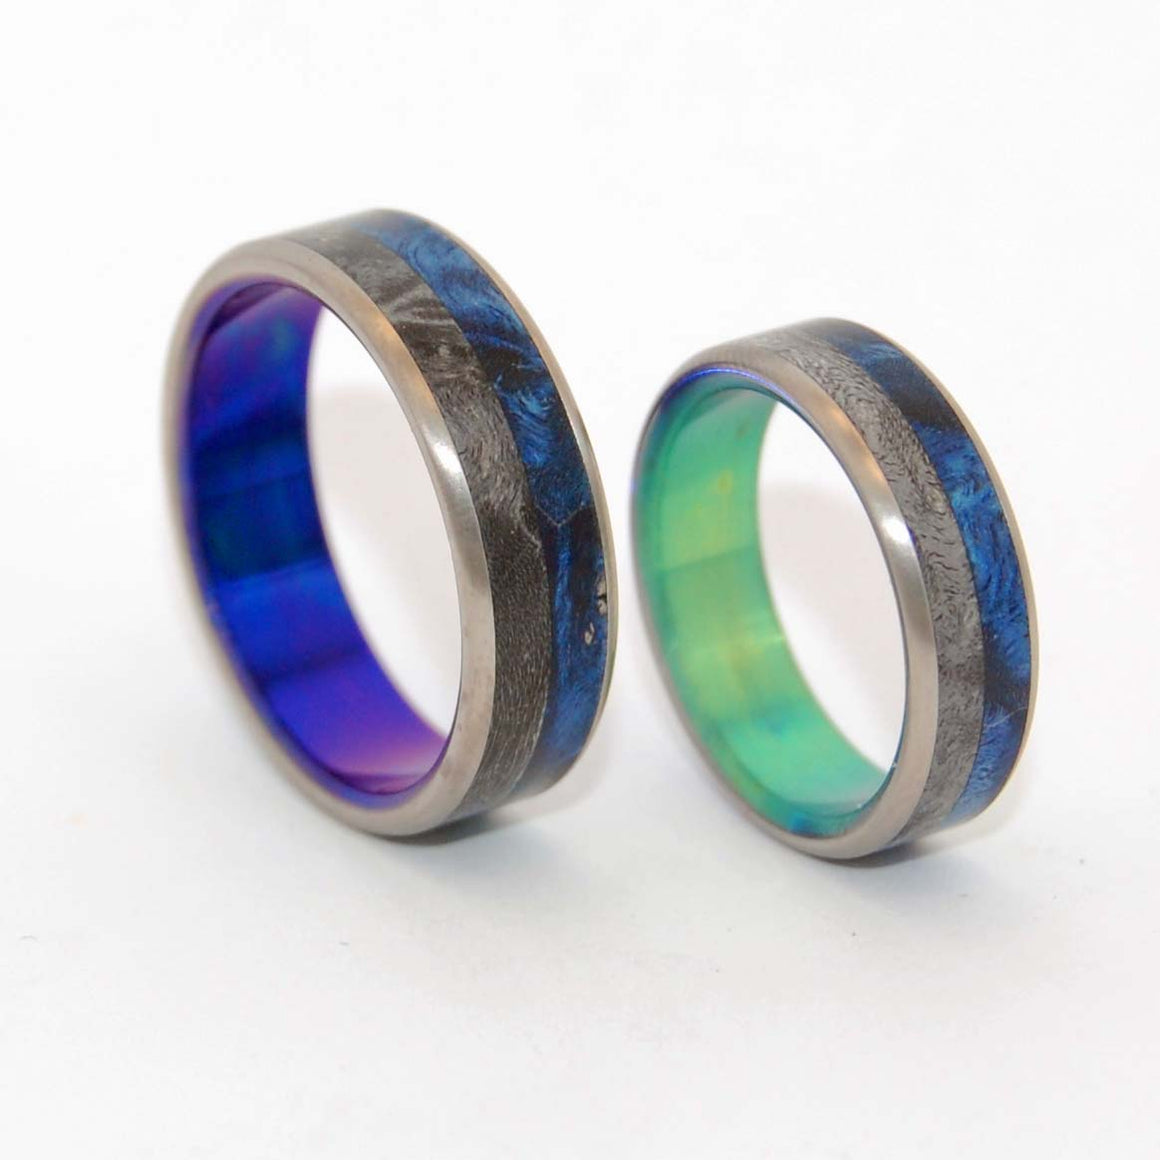 TAKE ME WITH YOU | Box Elder Wood - His and Hers Titanium Wedding Rings Set - Minter and Richter Designs